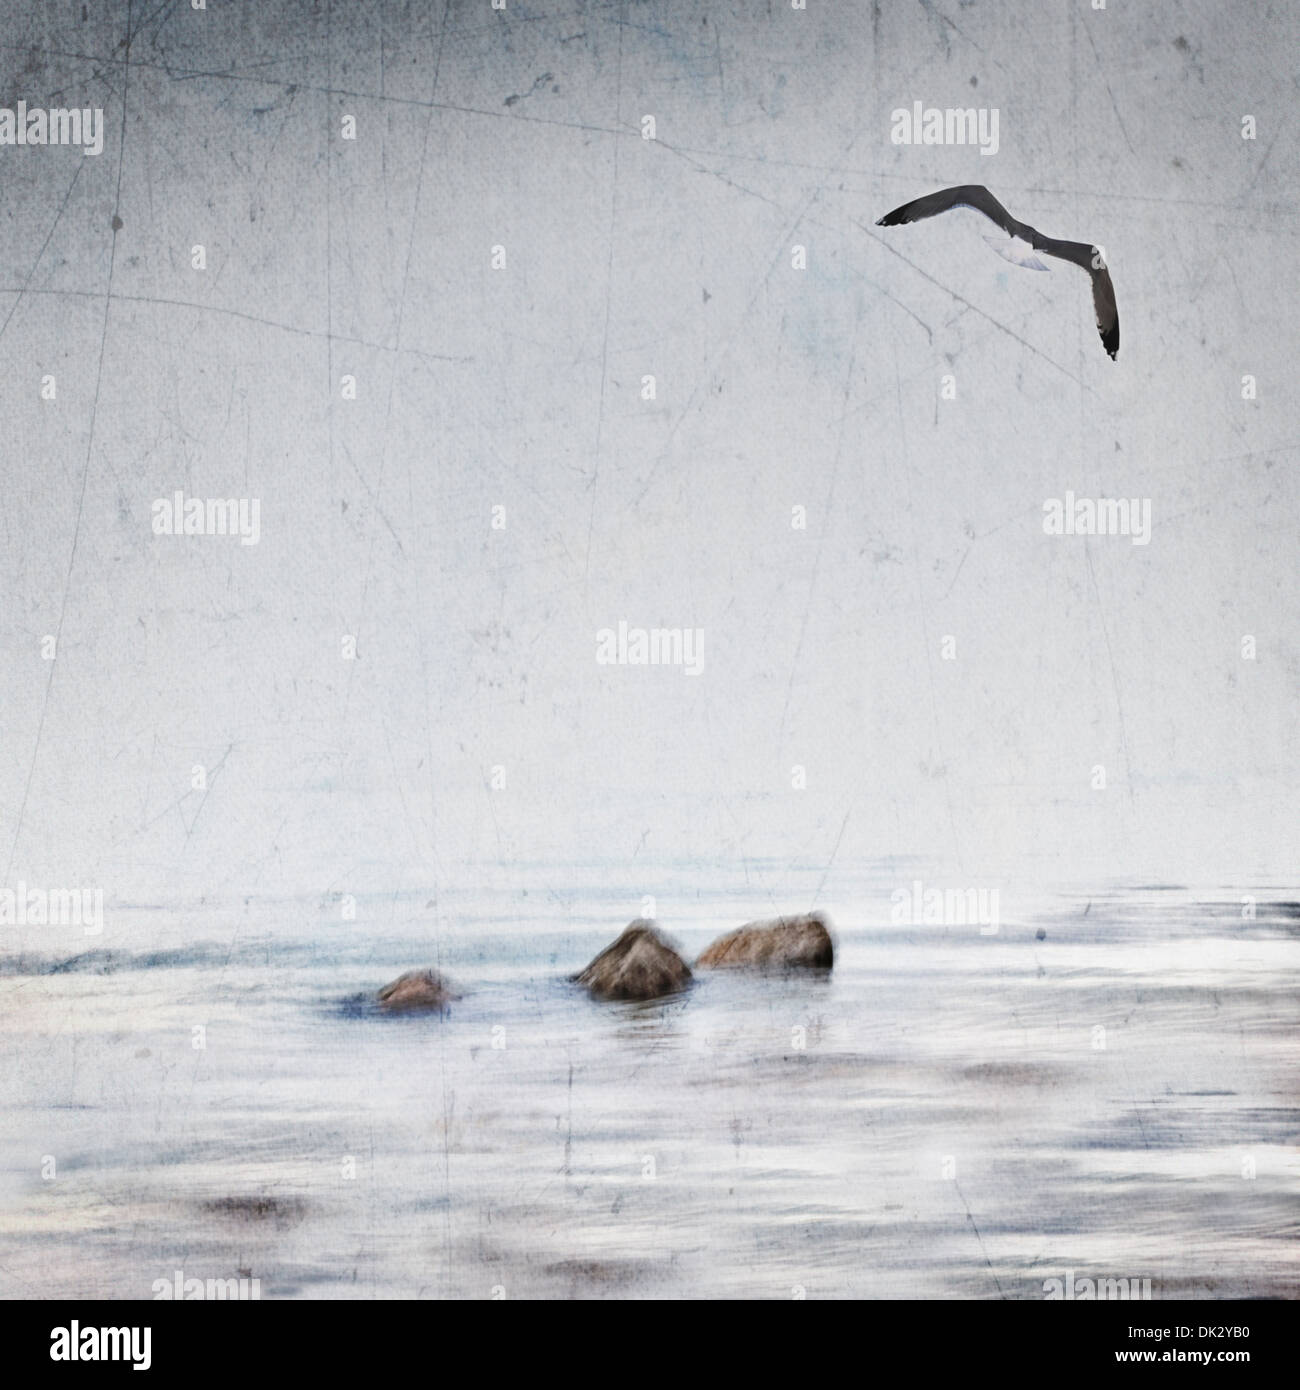 Seagull flying over ocean - Stock Image